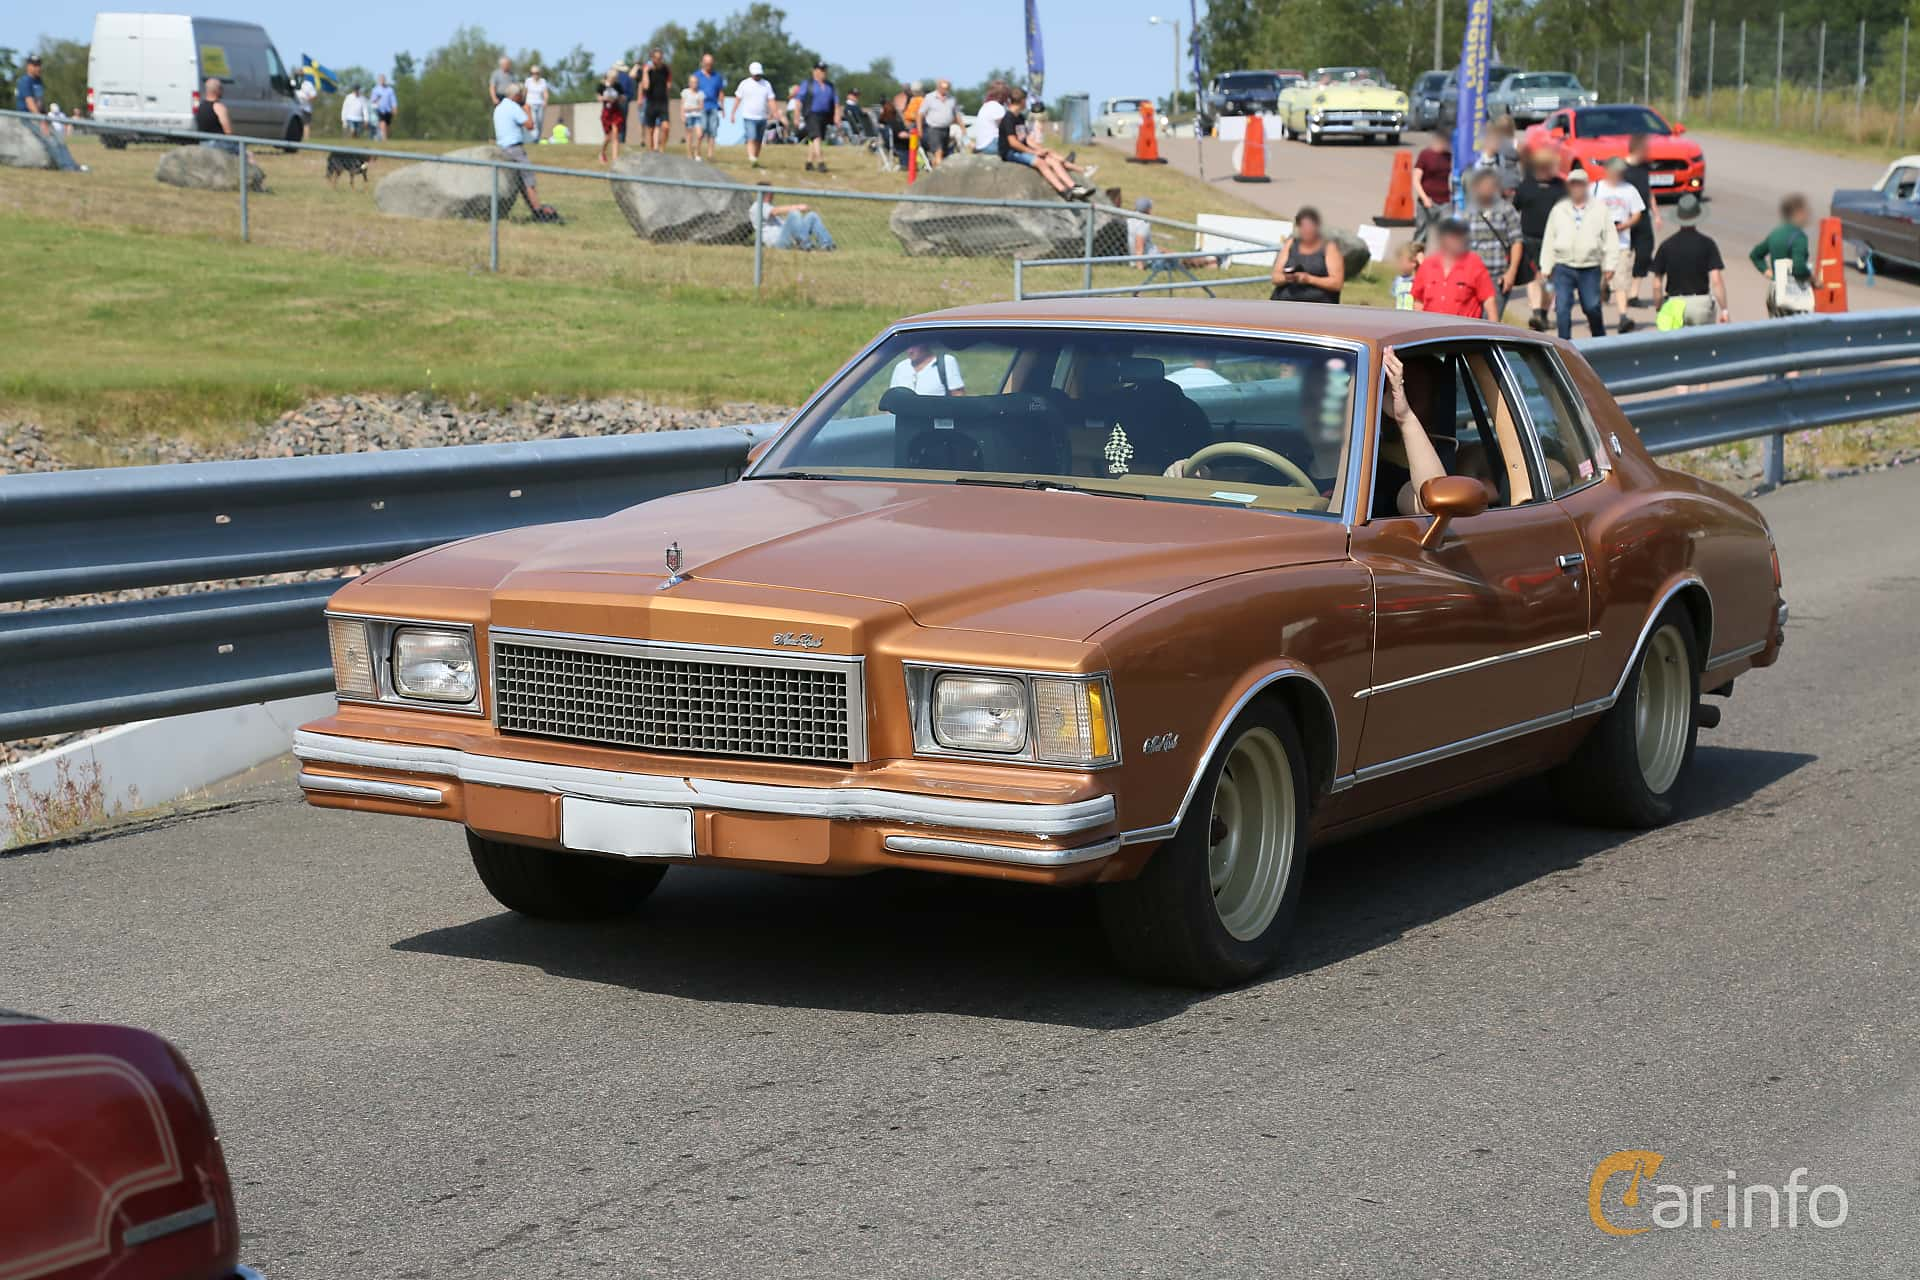 Chevrolet Monte Carlo 5.0 V8 Automatic, 147hp, 1978 at Wheels & Wings 2019